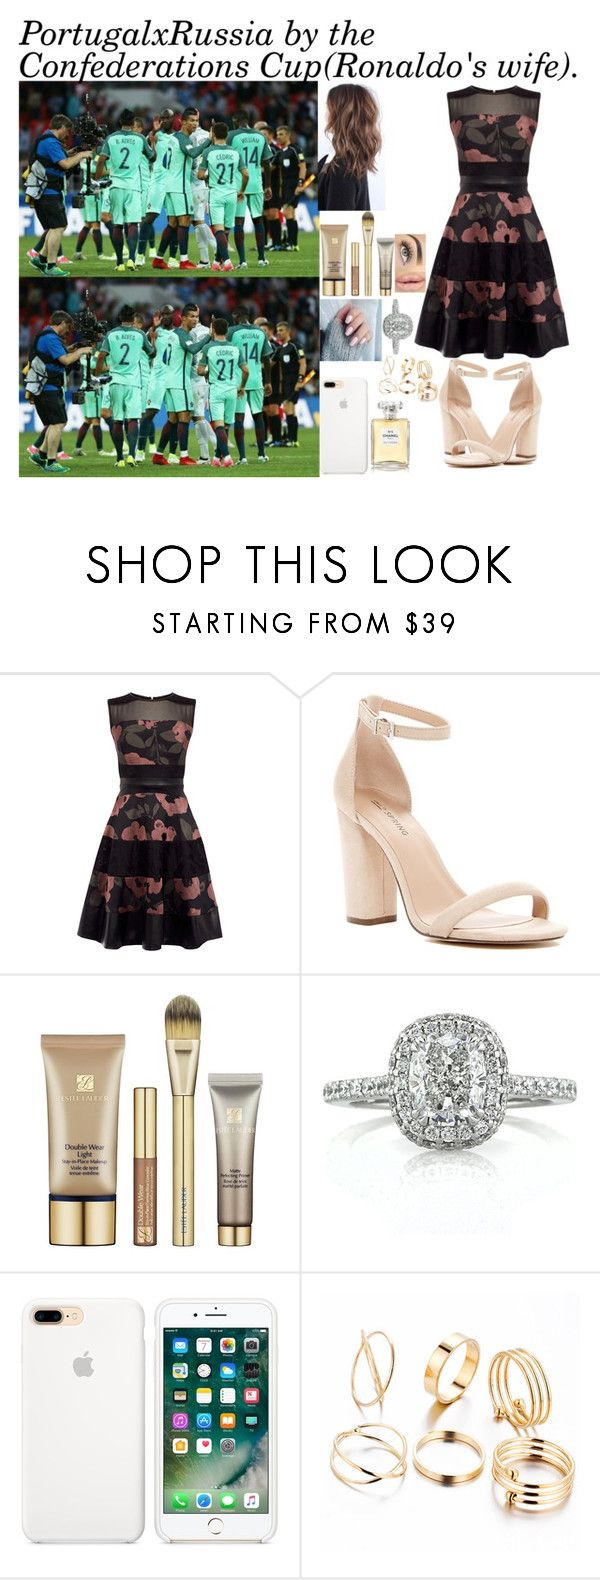 """""""Portugal x Rússia by the Confederations Cup in Russia (Ronaldo's wife)."""" by tatabranquinha ❤ liked on Polyvore featuring Call it SPRING, Estée Lauder, Mark Broumand, Chanel, cristianoronaldo, Russia and confederationscup"""